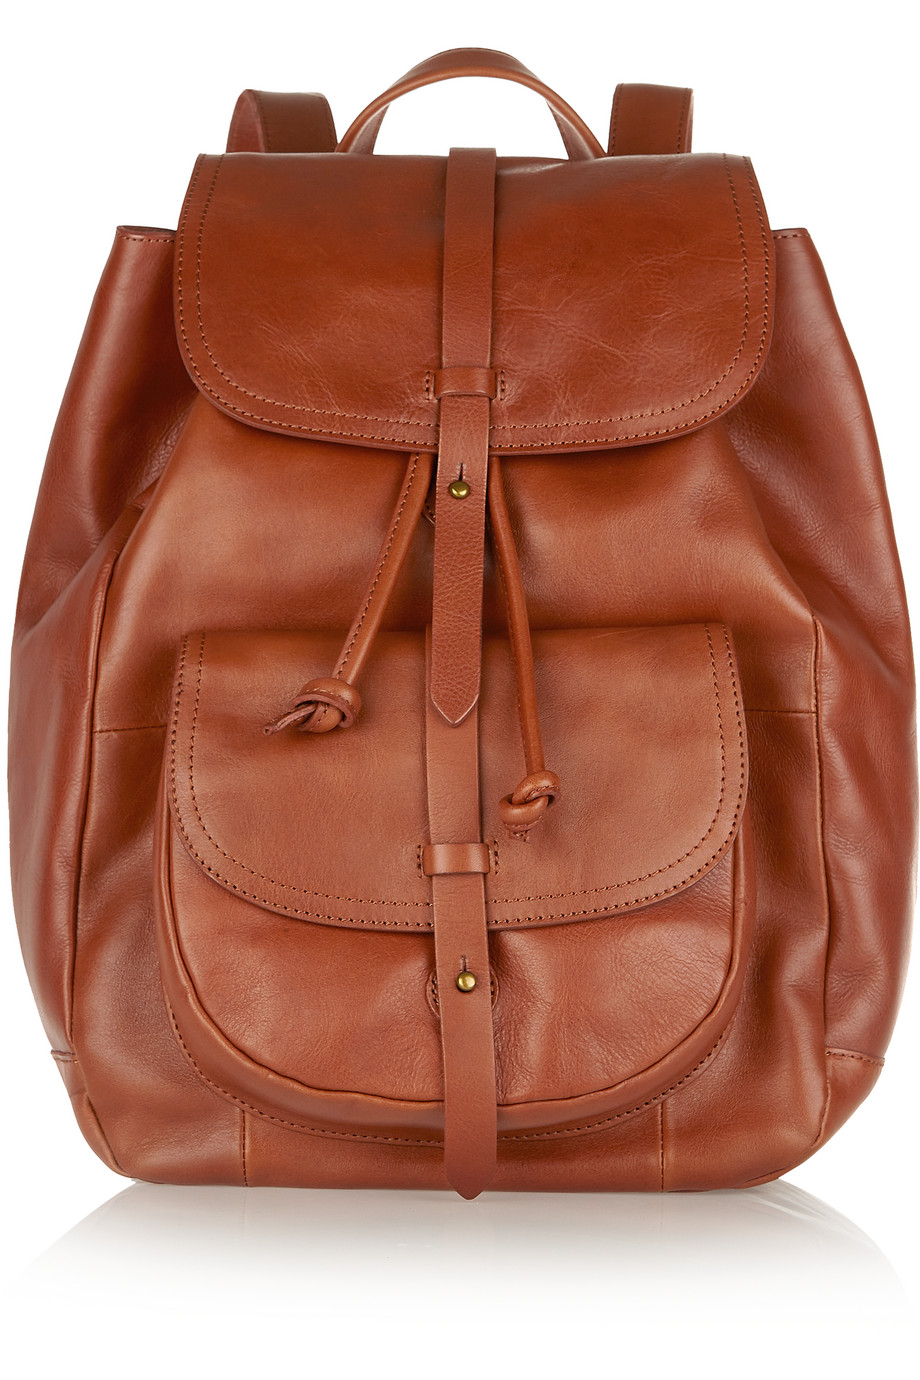 Madewell New Transport Leather Backpack